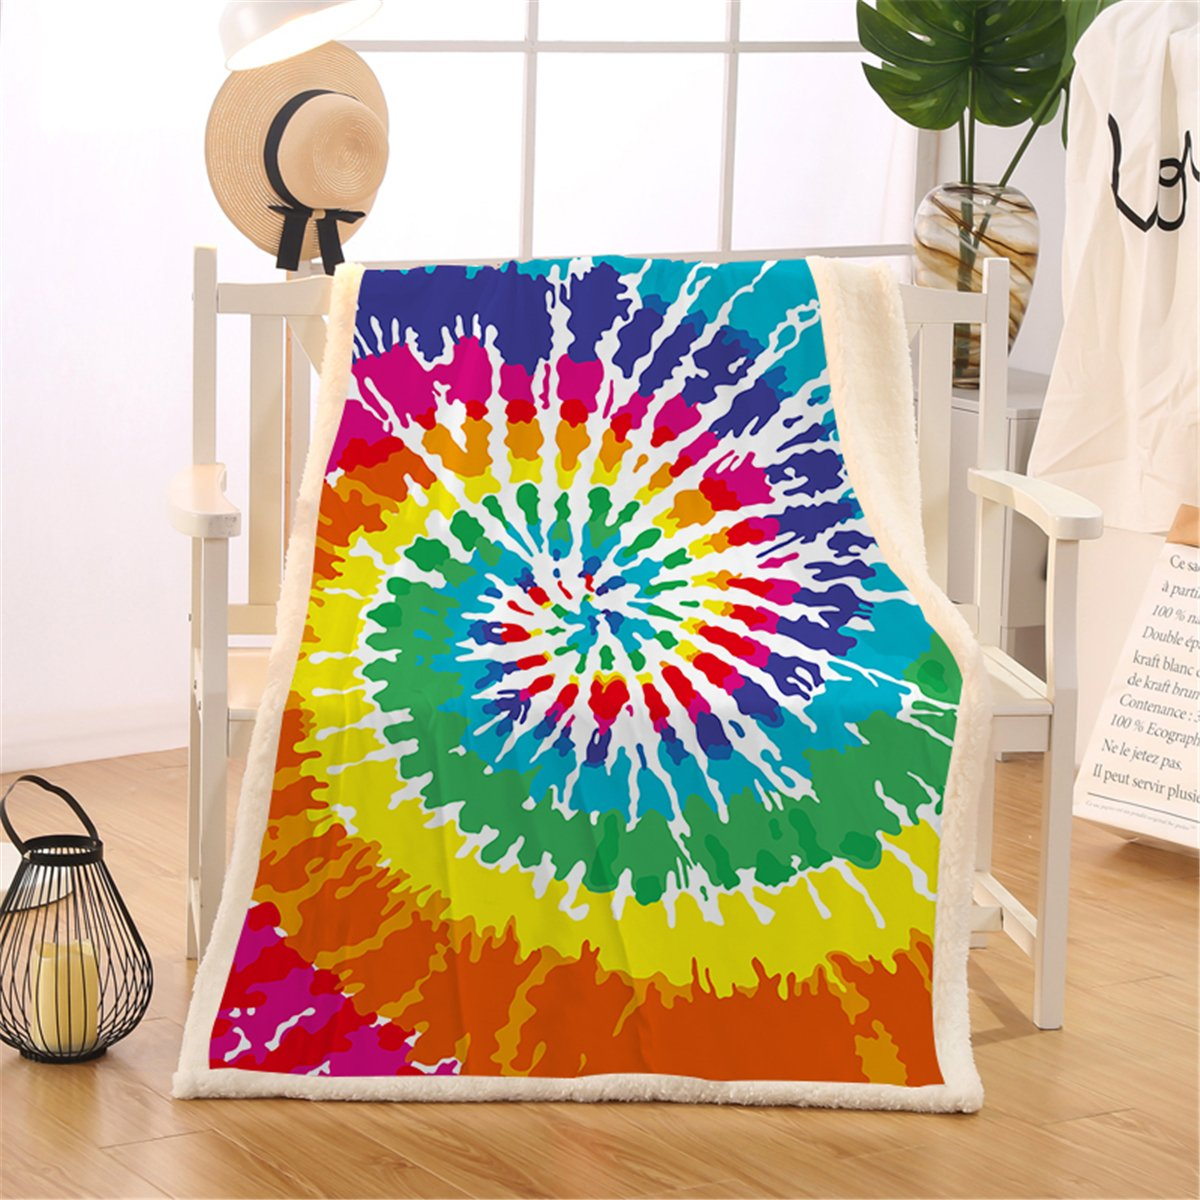 25cb43c95a1296 Amazon.com  BlessLiving Tie Dye Sherpa Throw Blanket Hippie Fleece Blanket  Rainbow Bed Blanket Camping Blankets Warm for Sofa Couch Bed (Twin